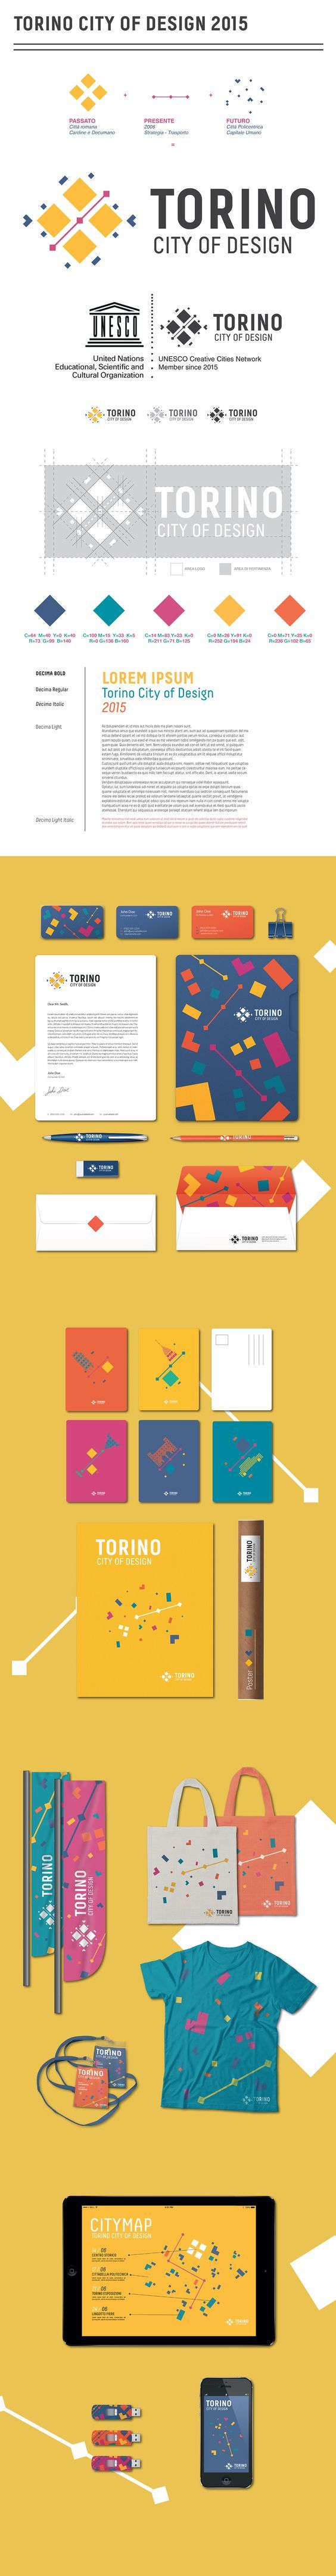 Torino City of Design 2015 Branding by Francesca Pagliaro | Fivestar Branding – Design and Branding Agency & Inspiration Gallery